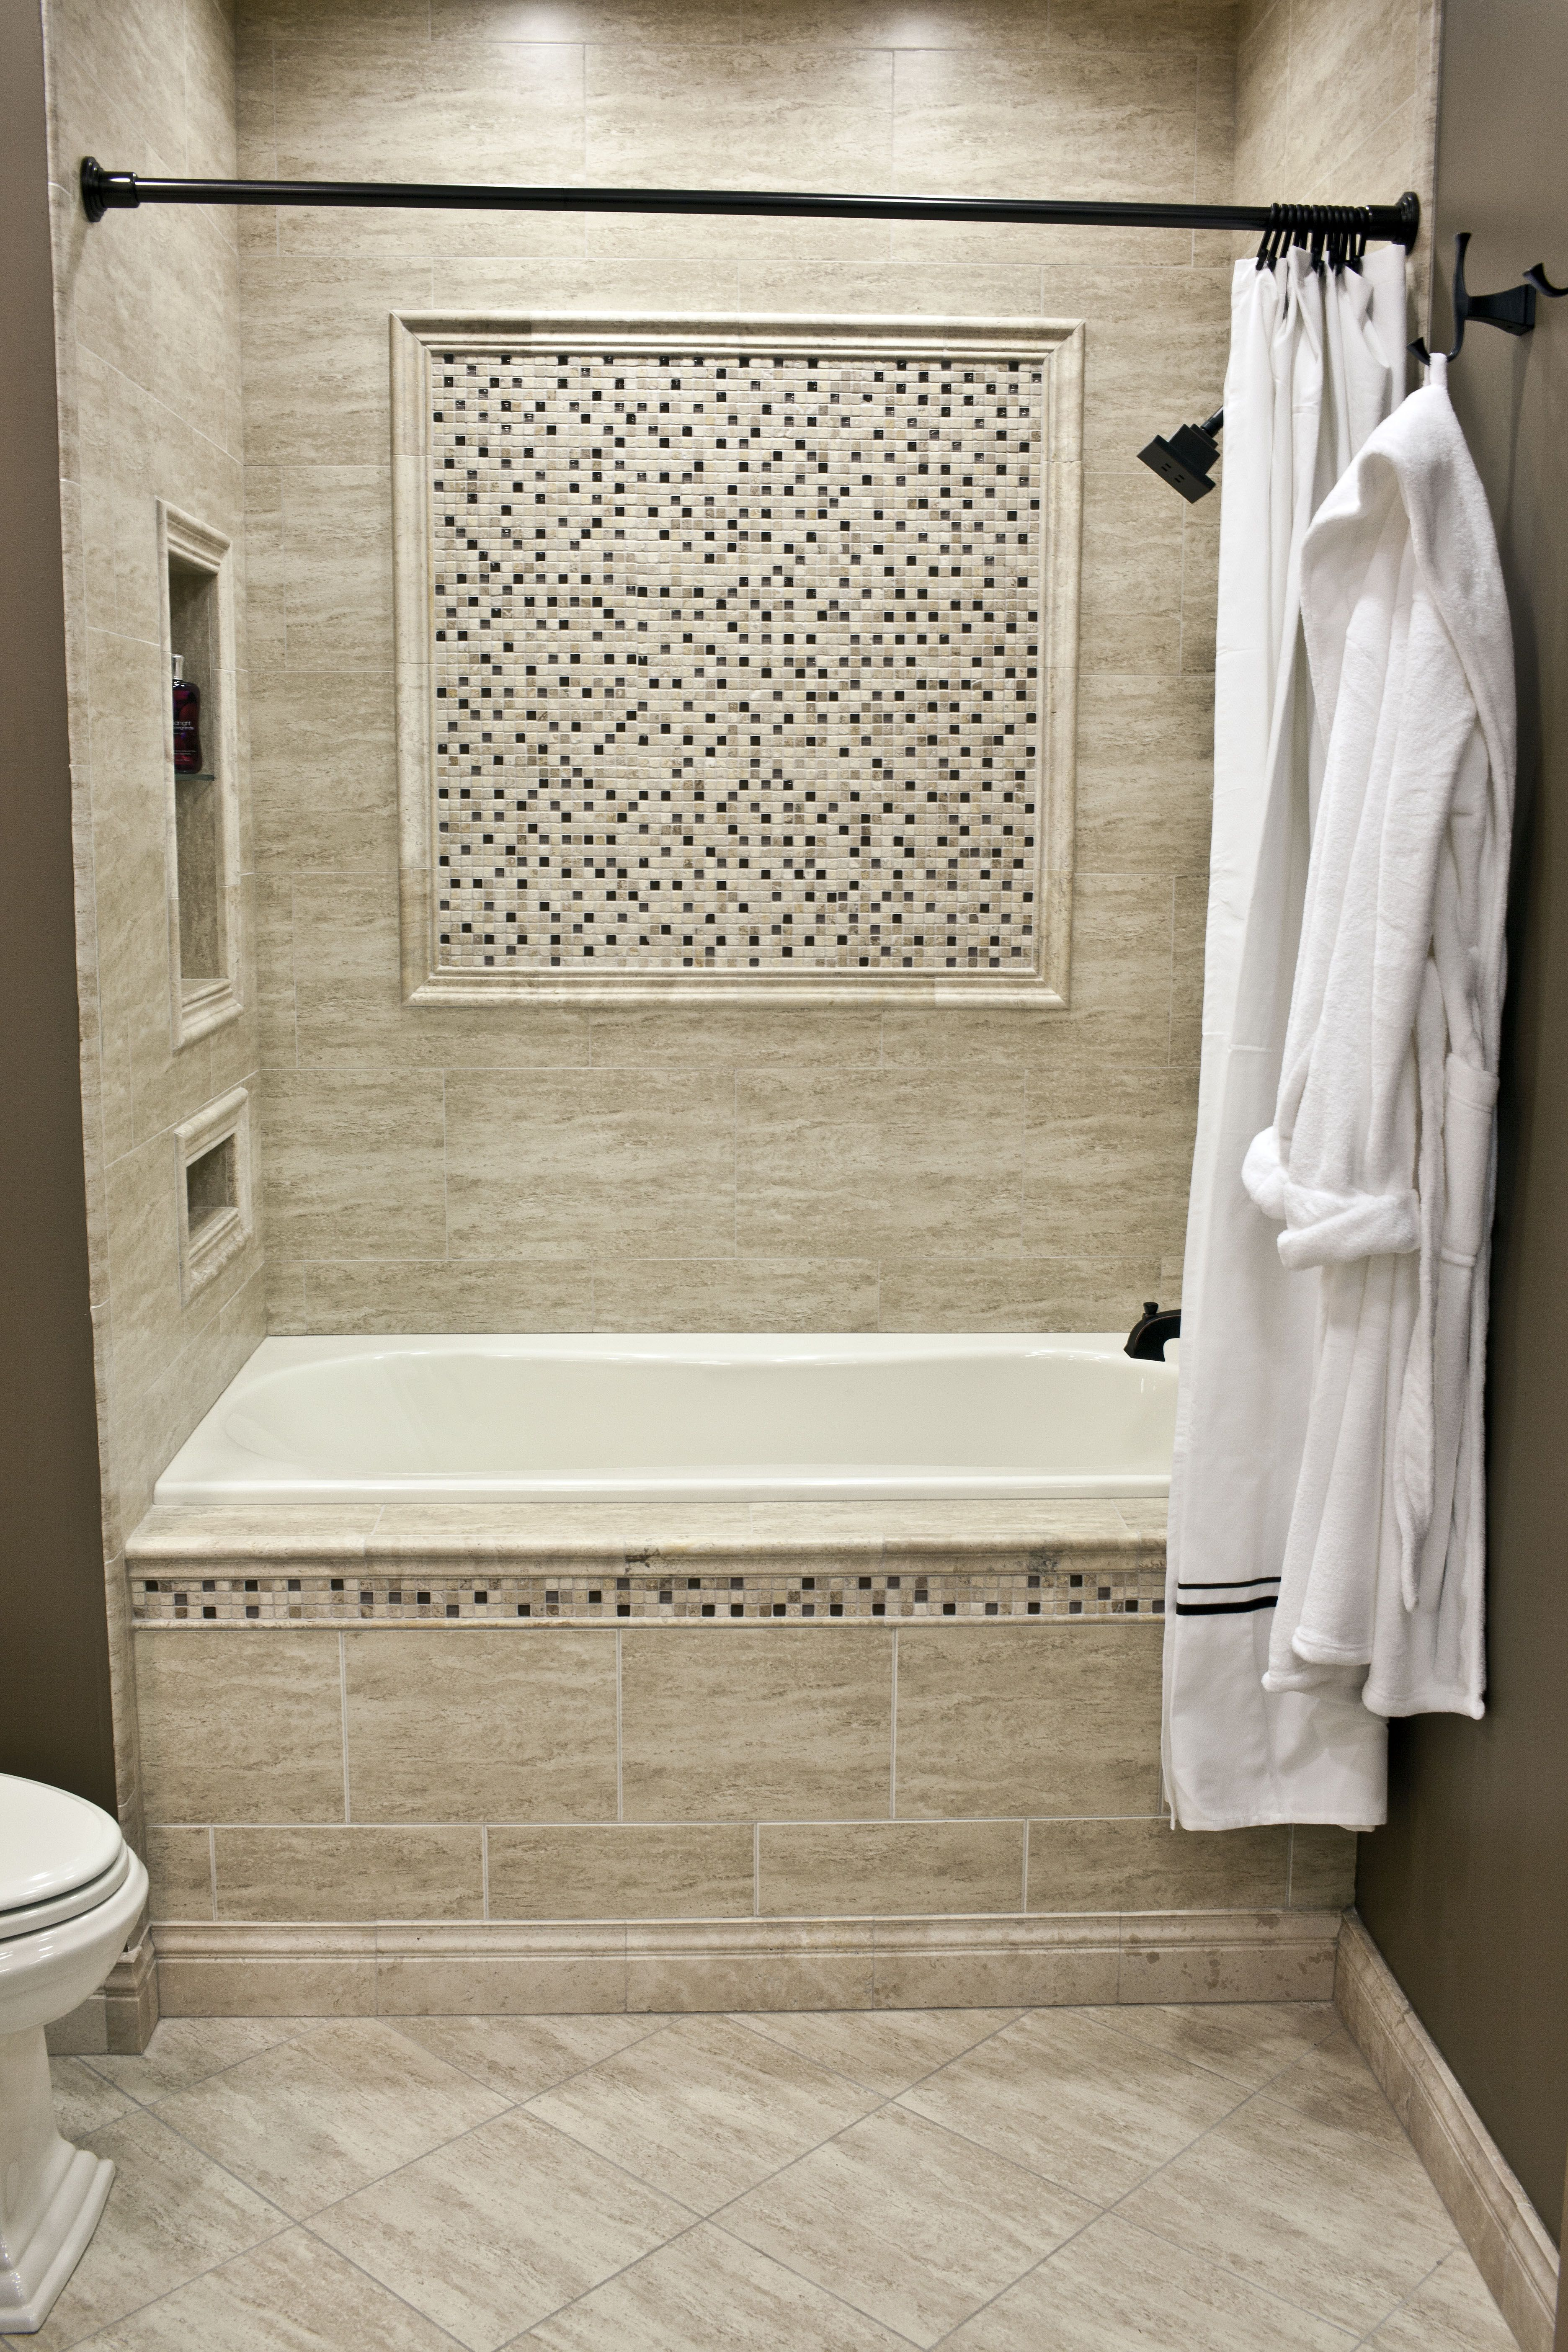 Ceramic Wall Tile Mixed With A Stone And Glass Mixed Mosaic Bath